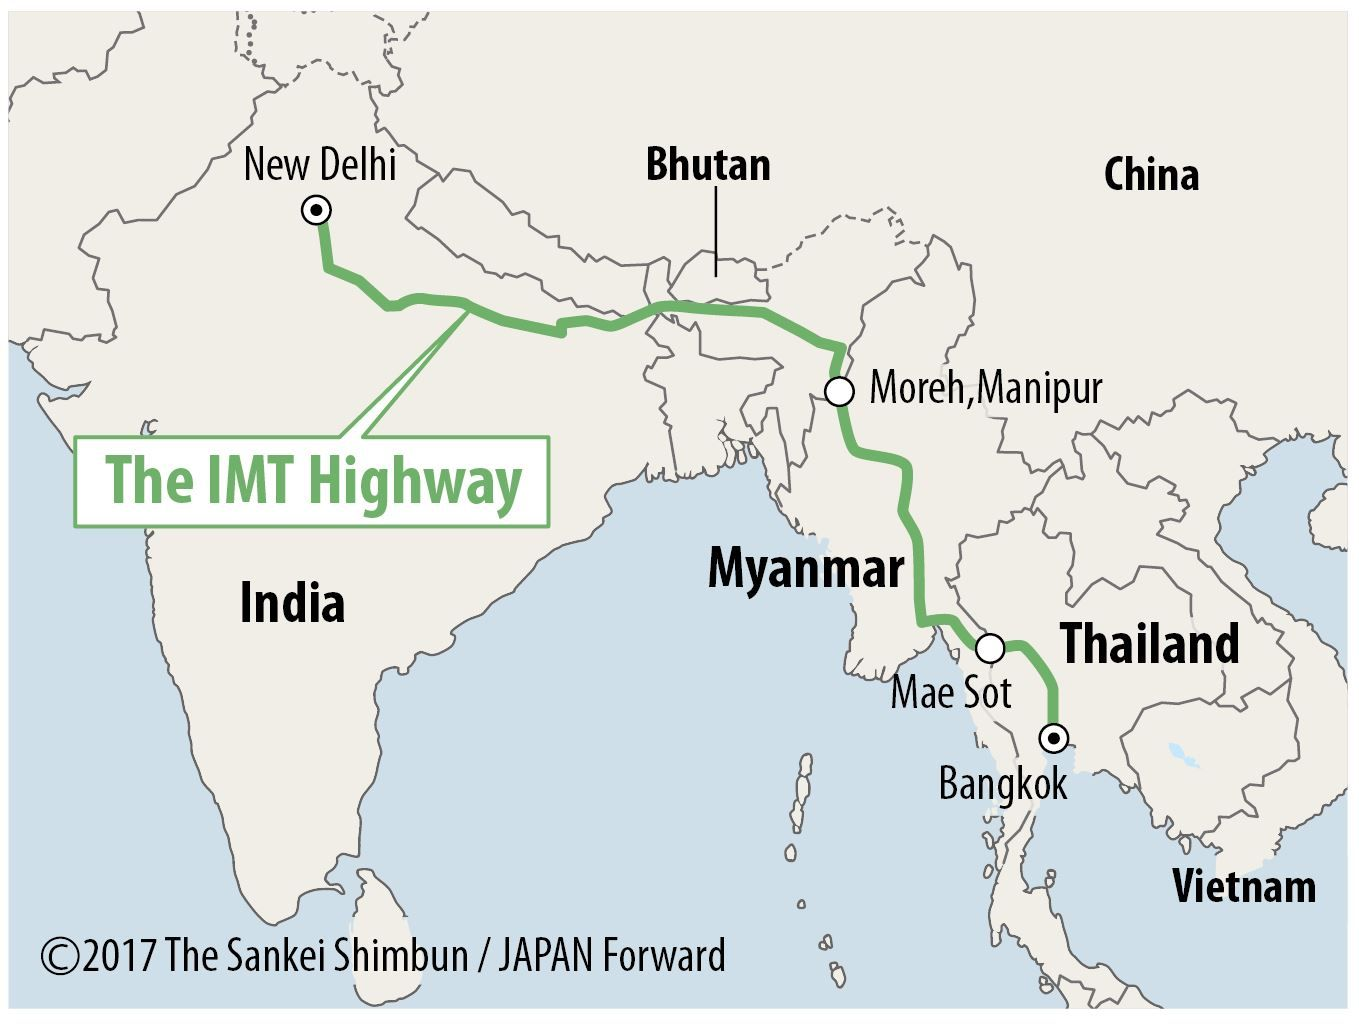 India myanmar thailand trilateral highways future japan forward india myanmar thailand trilateral highways future japan forward gumiabroncs Image collections